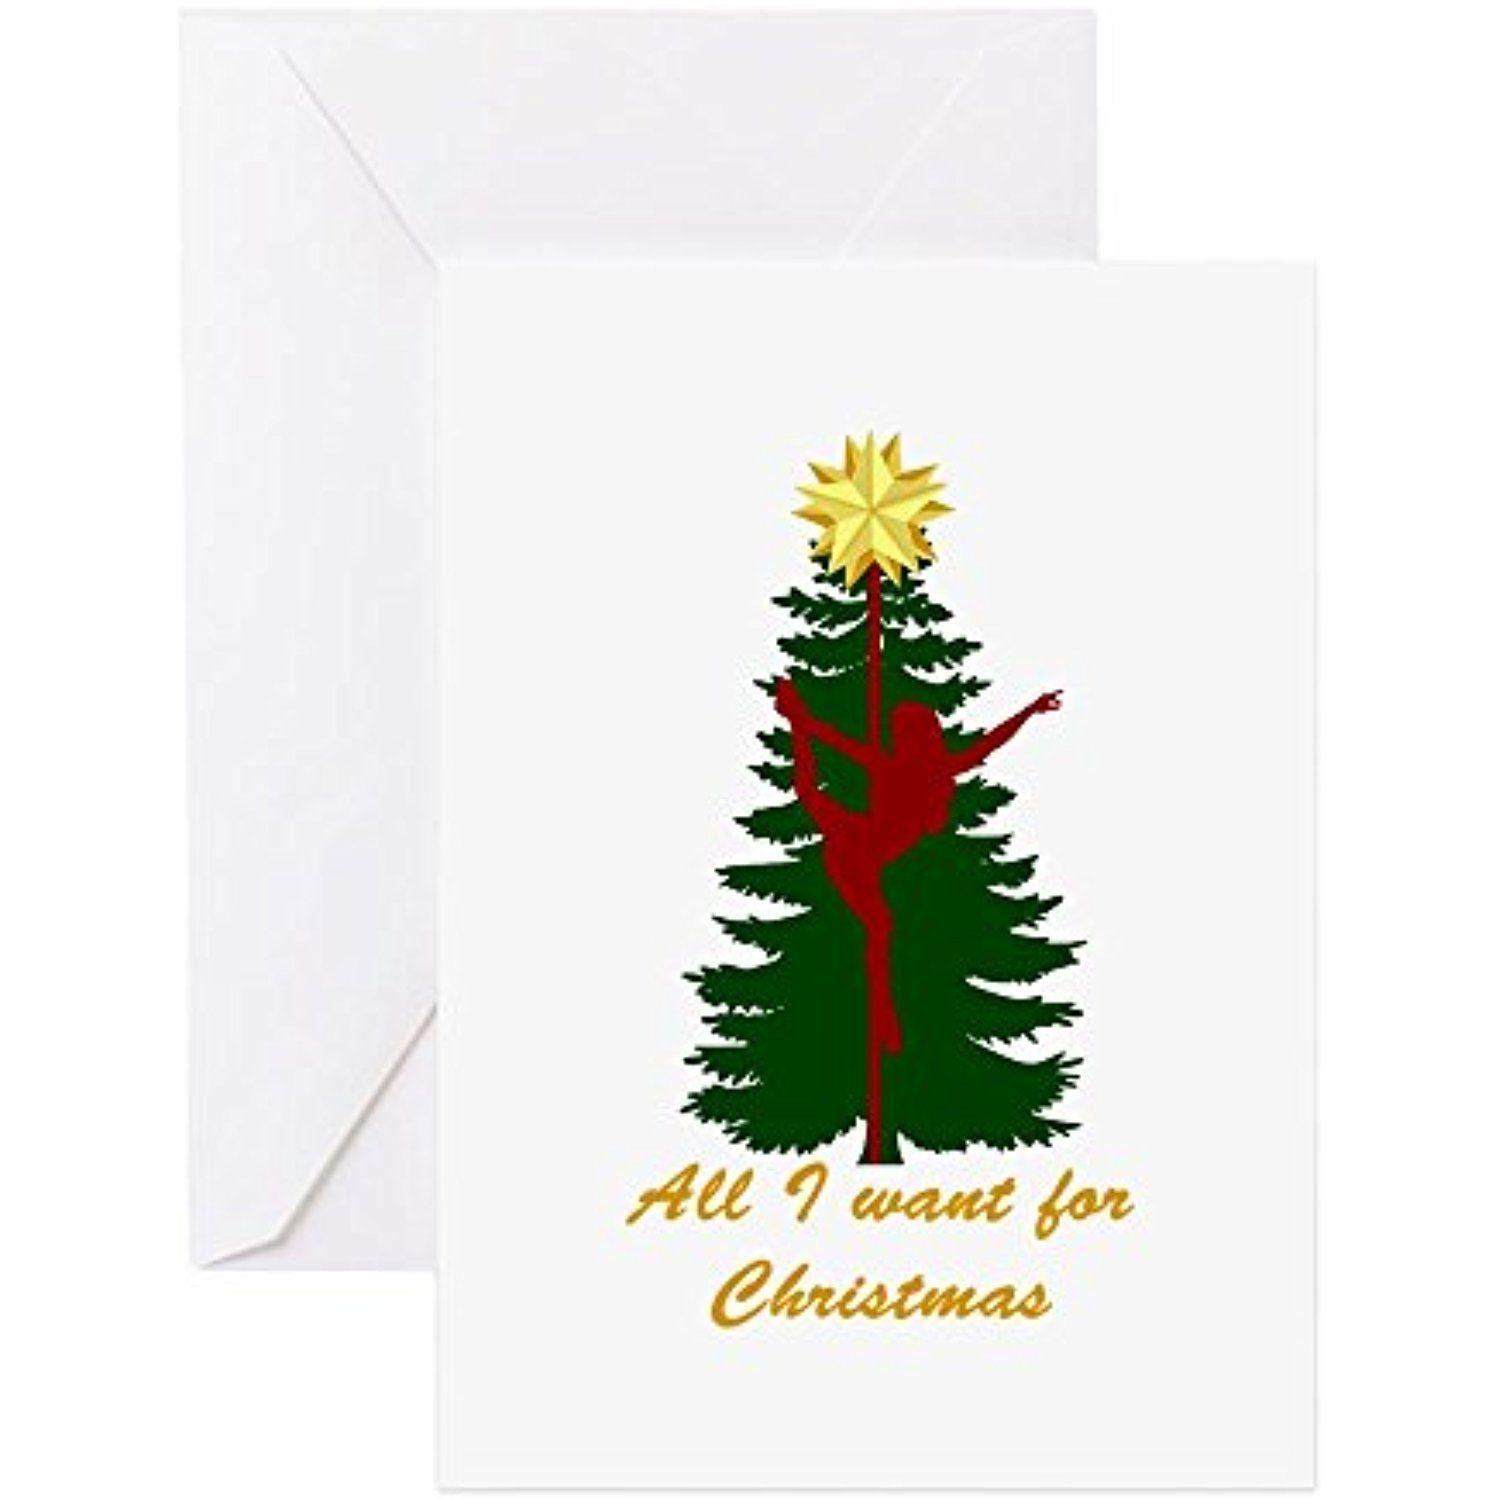 Cafepress all i want for christmas yellow greeting cards cafepress all i want for christmas yellow greeting cards greeting card note card kristyandbryce Choice Image